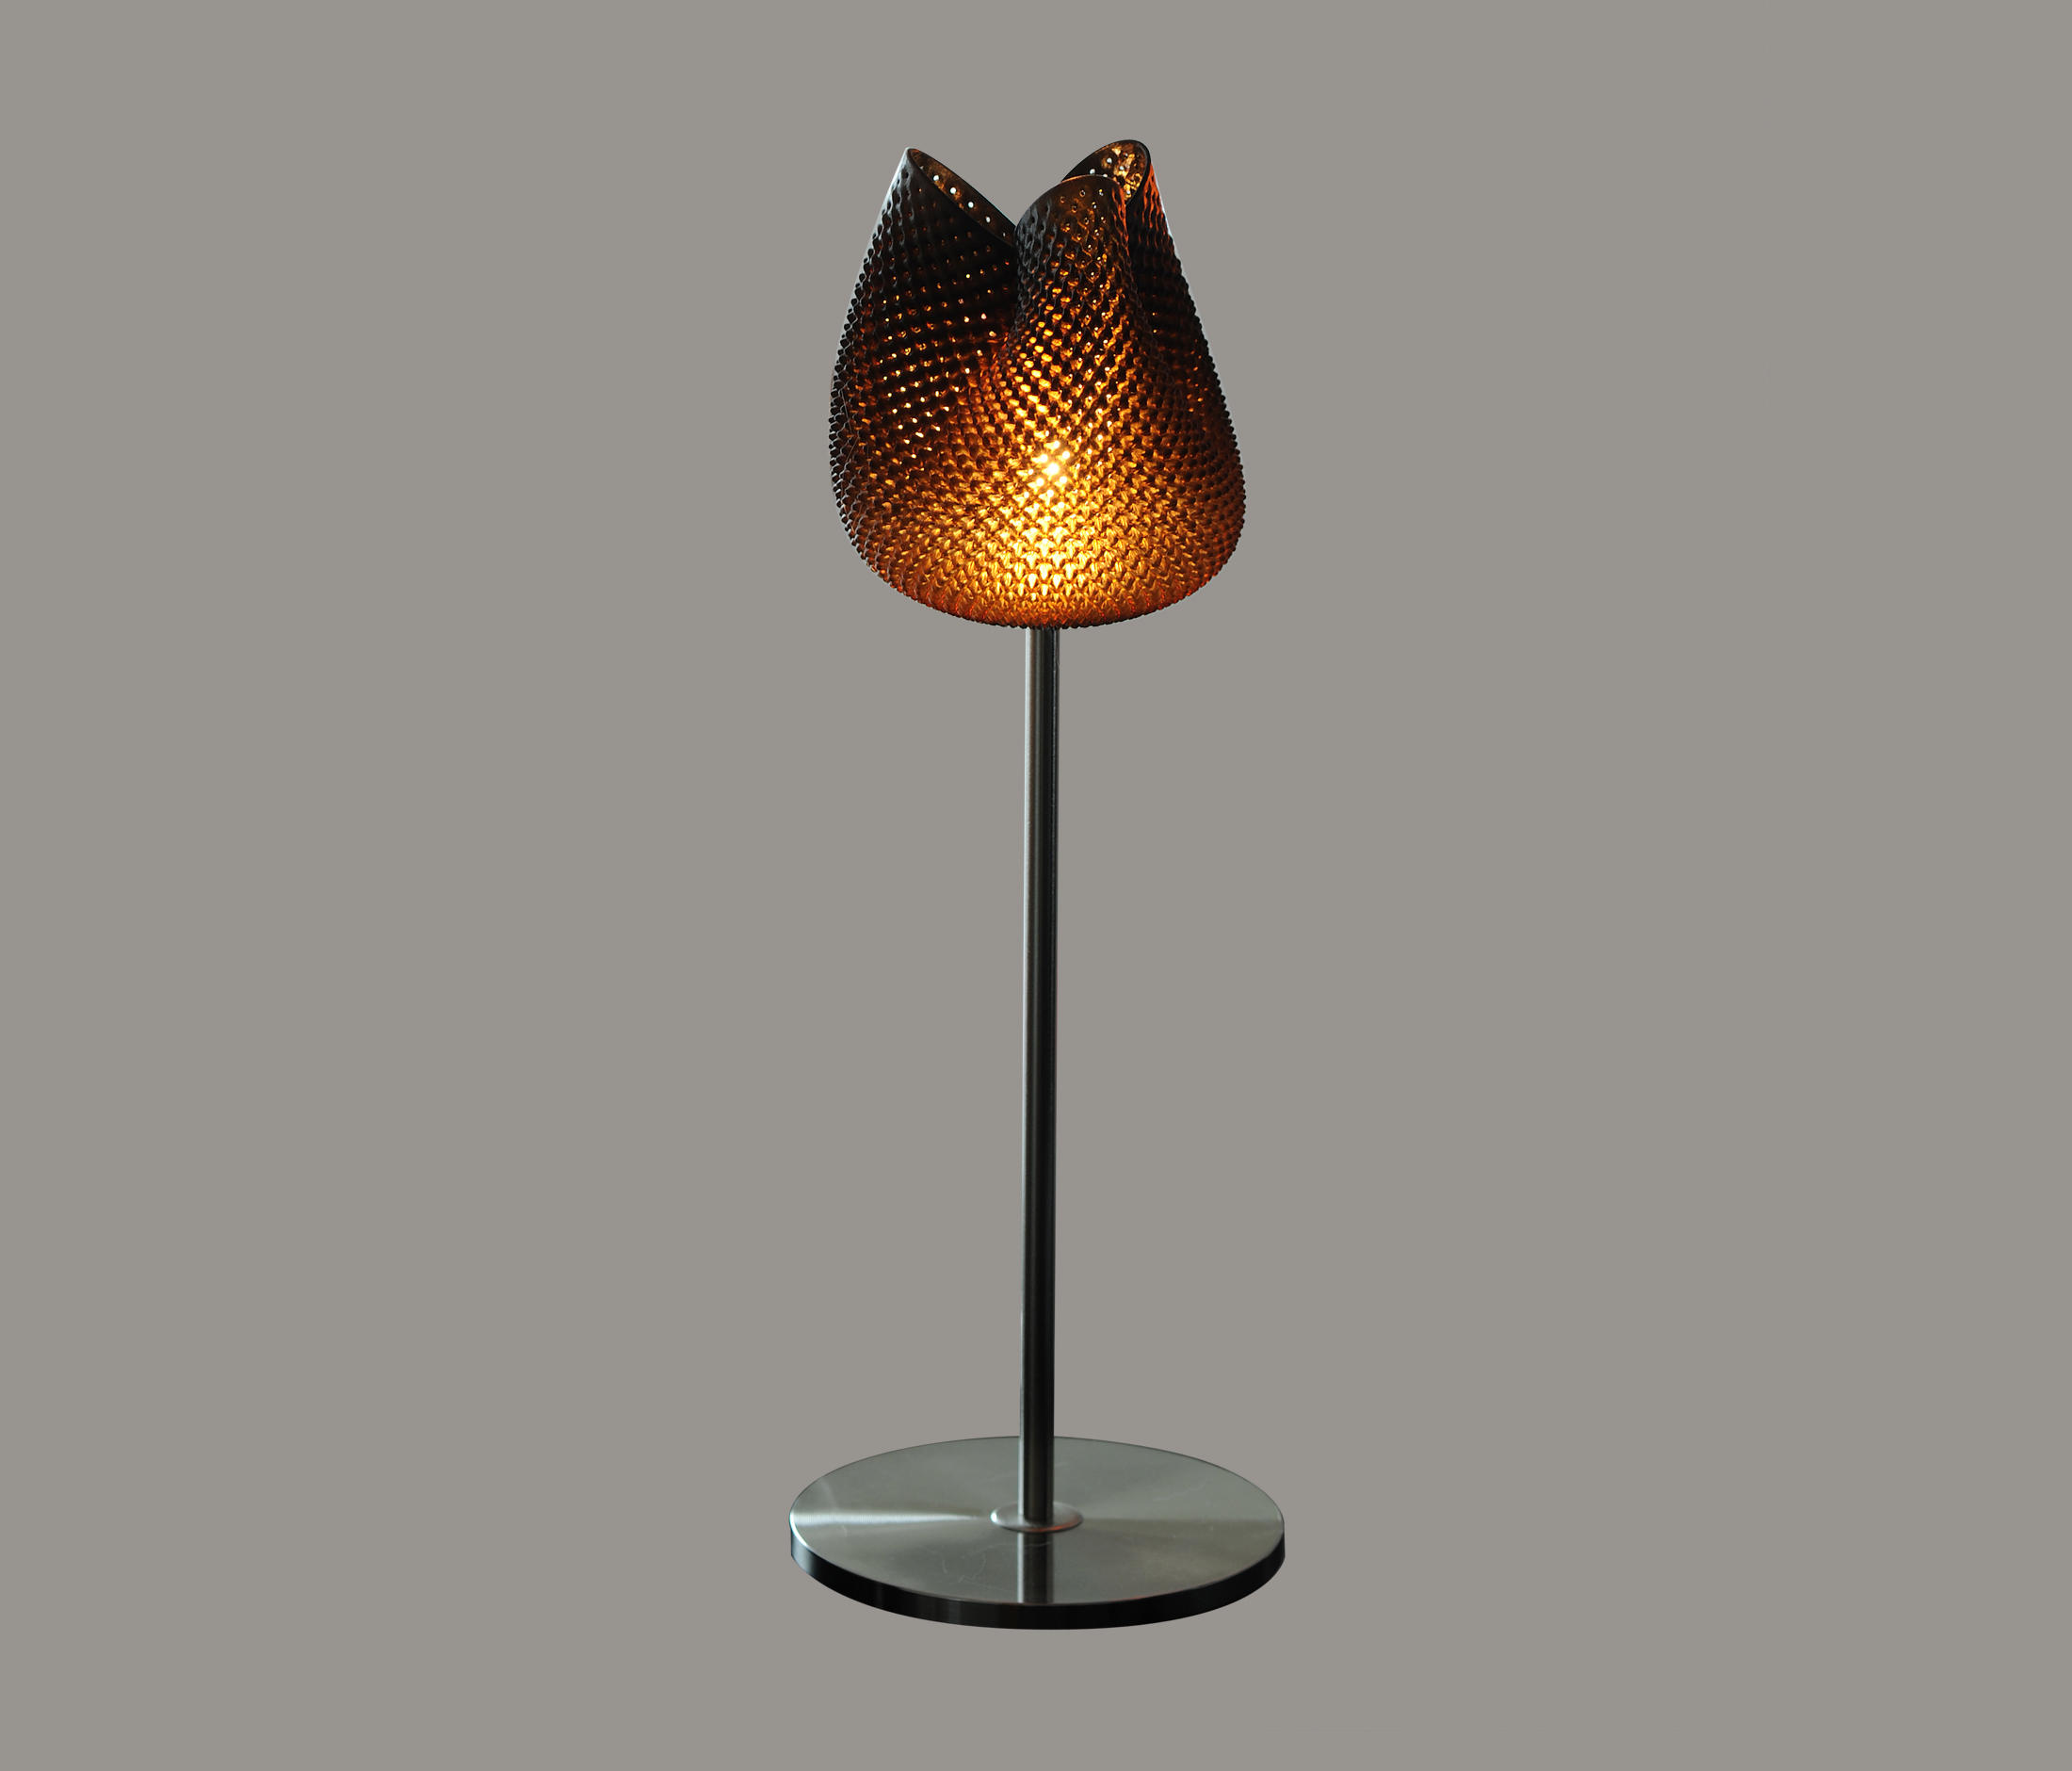 Tulipx table lamp general lighting from x by materialise tulipx table lamp by x by materialise general lighting aloadofball Image collections